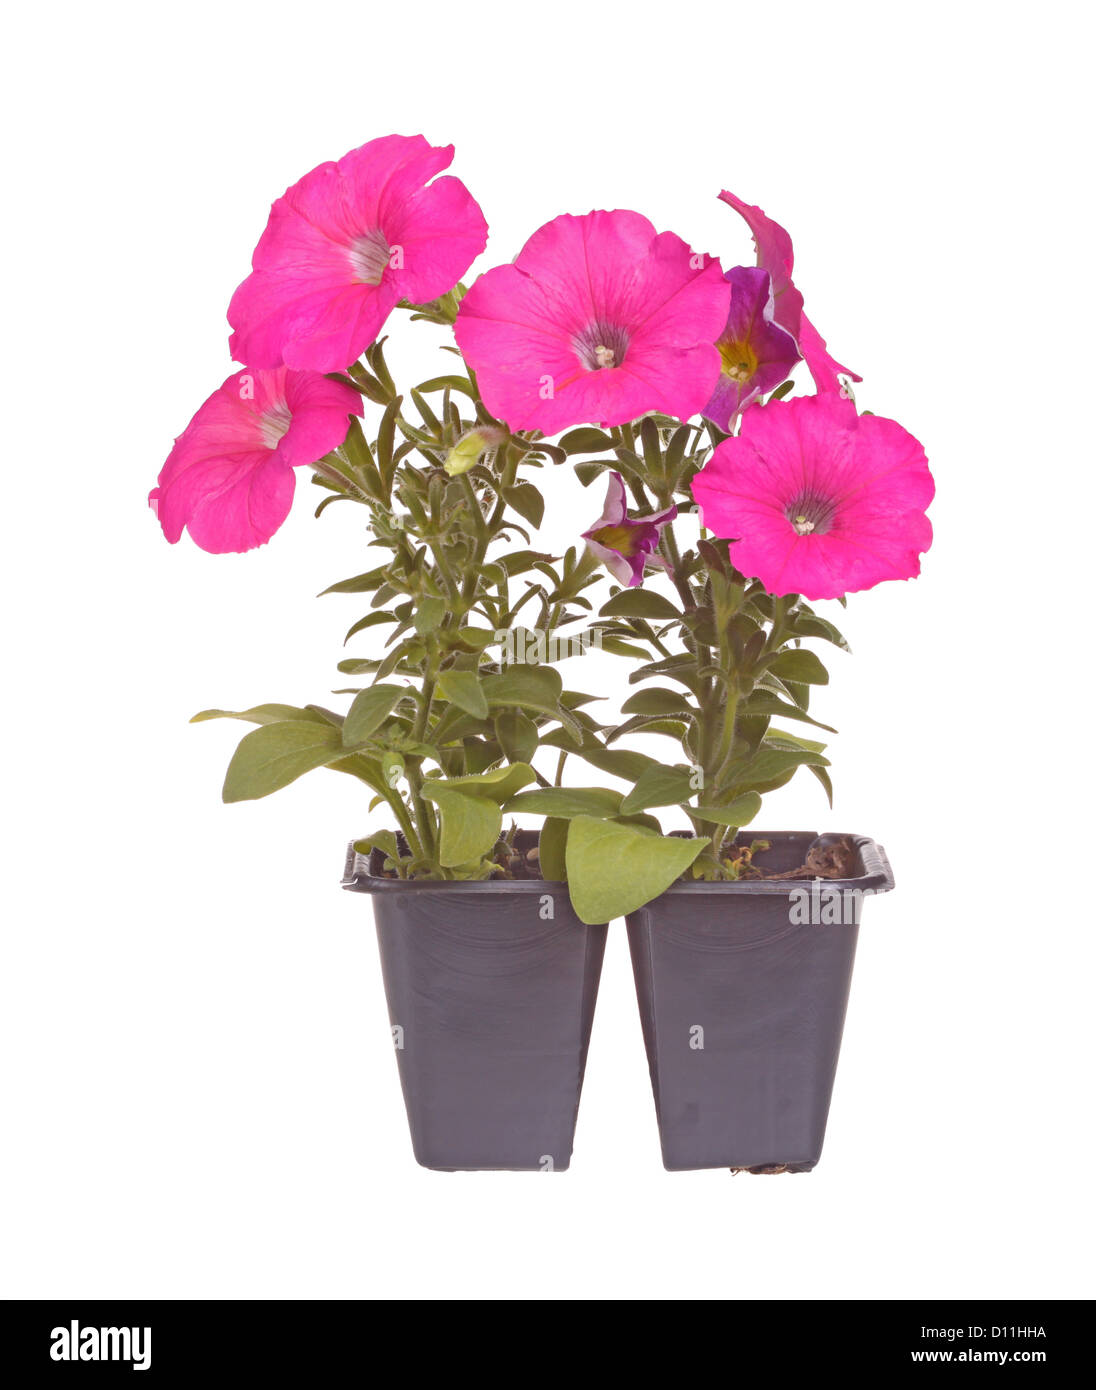 Pack of two pink-flowered petunia seedlings ready for transplanting - Stock Image